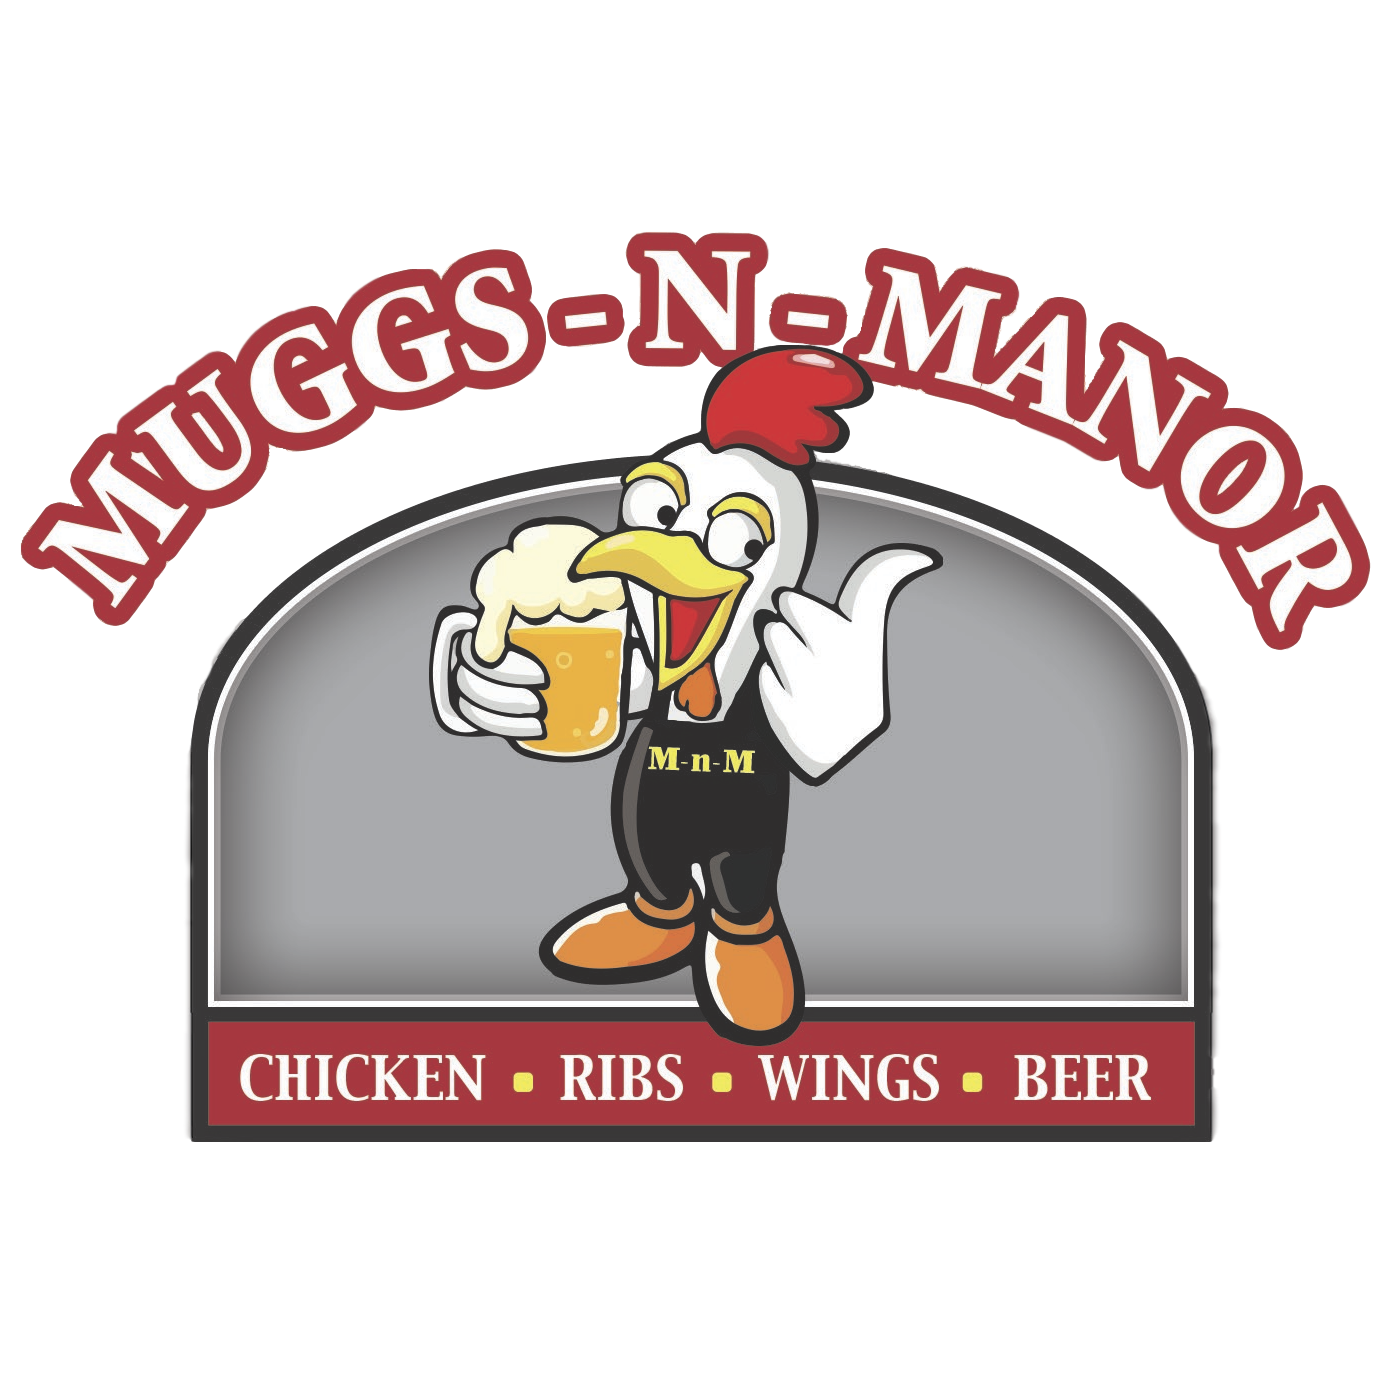 image of the Muggs-N-Manor